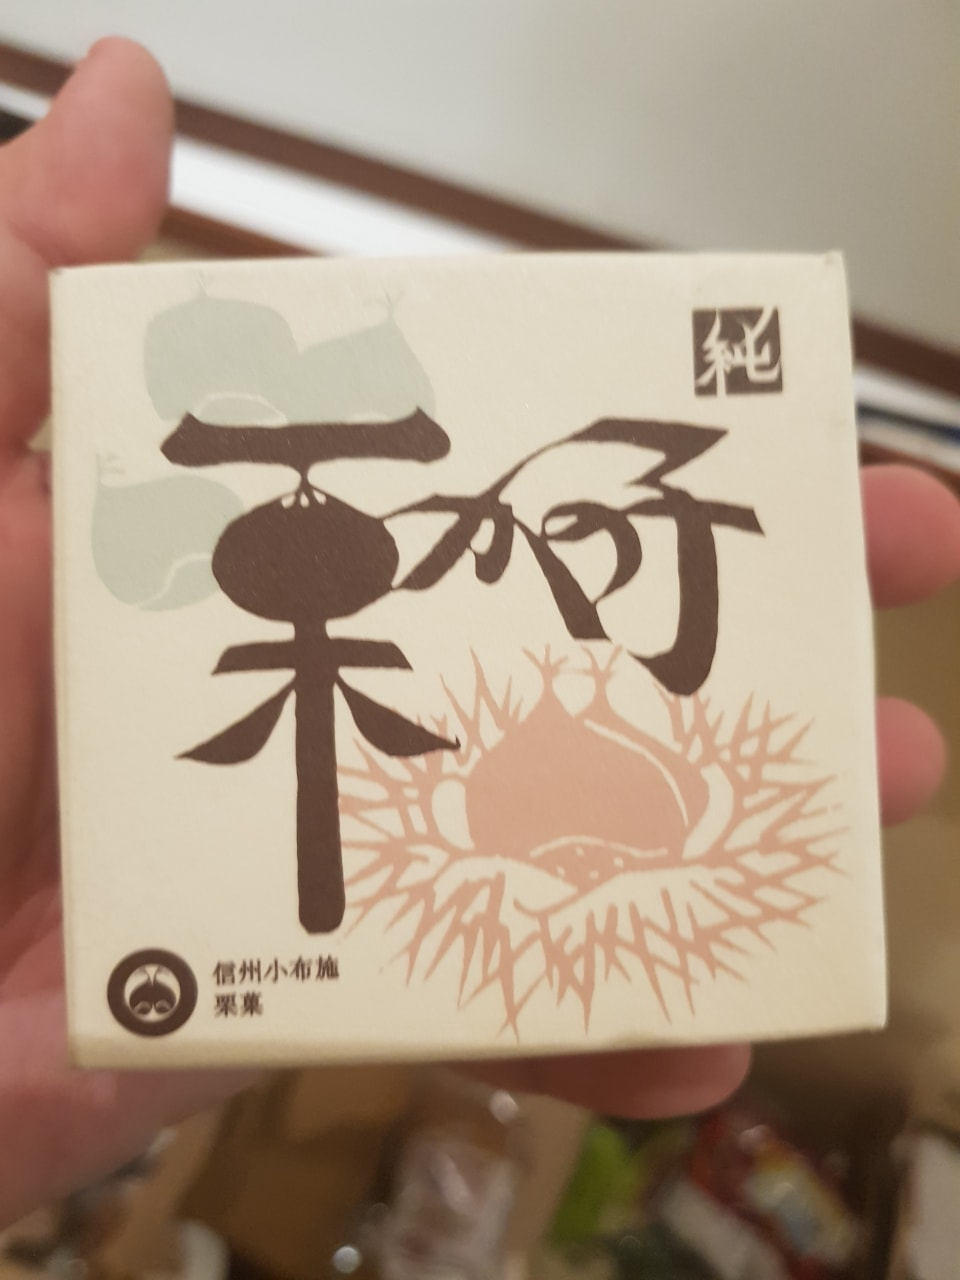 Candied Chestnuts, made in Japan